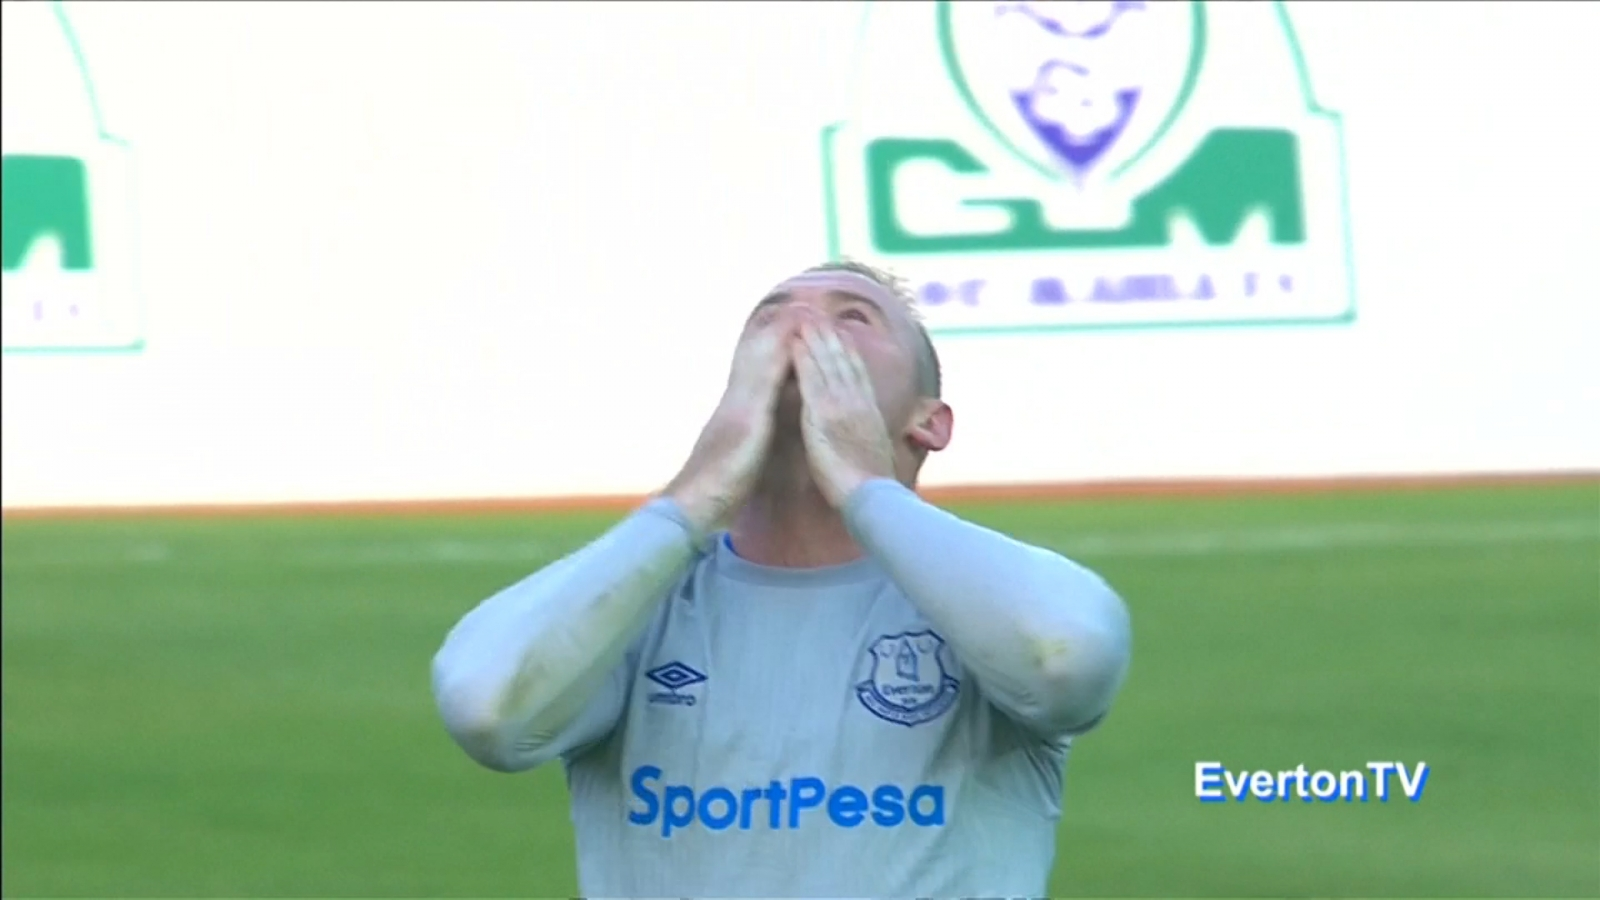 wayne-rooney-scores-wonder-goal-on-his-first-game-back-at-everton